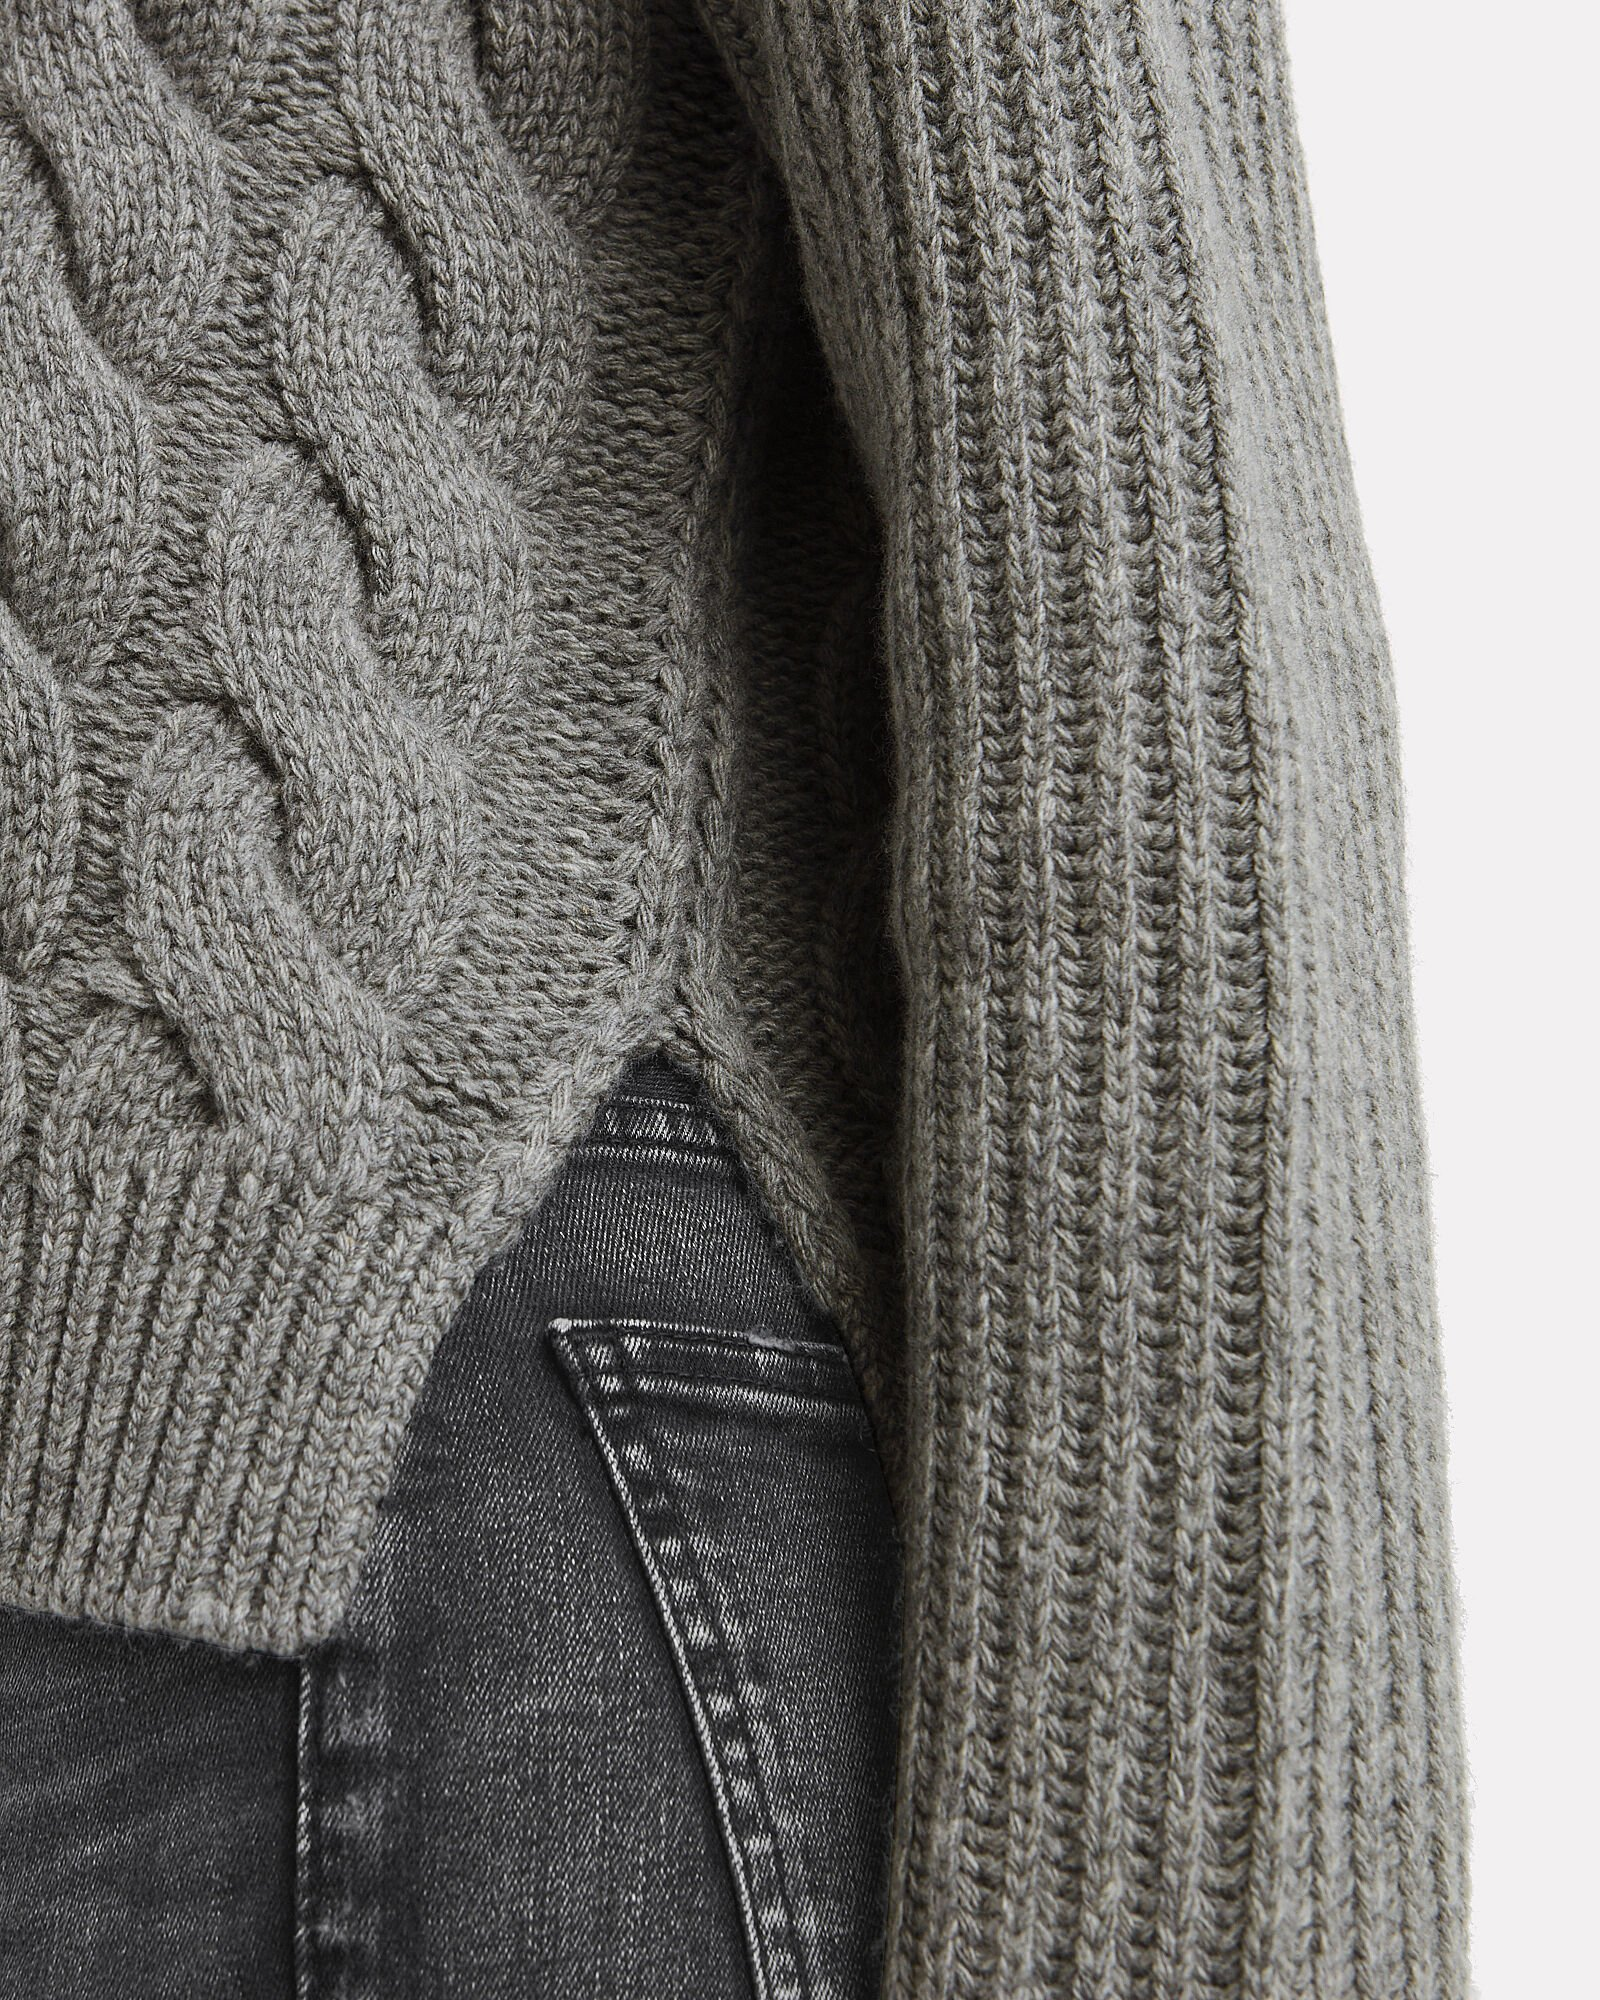 Lambswool Cable Knit Sweater, GREY, hi-res